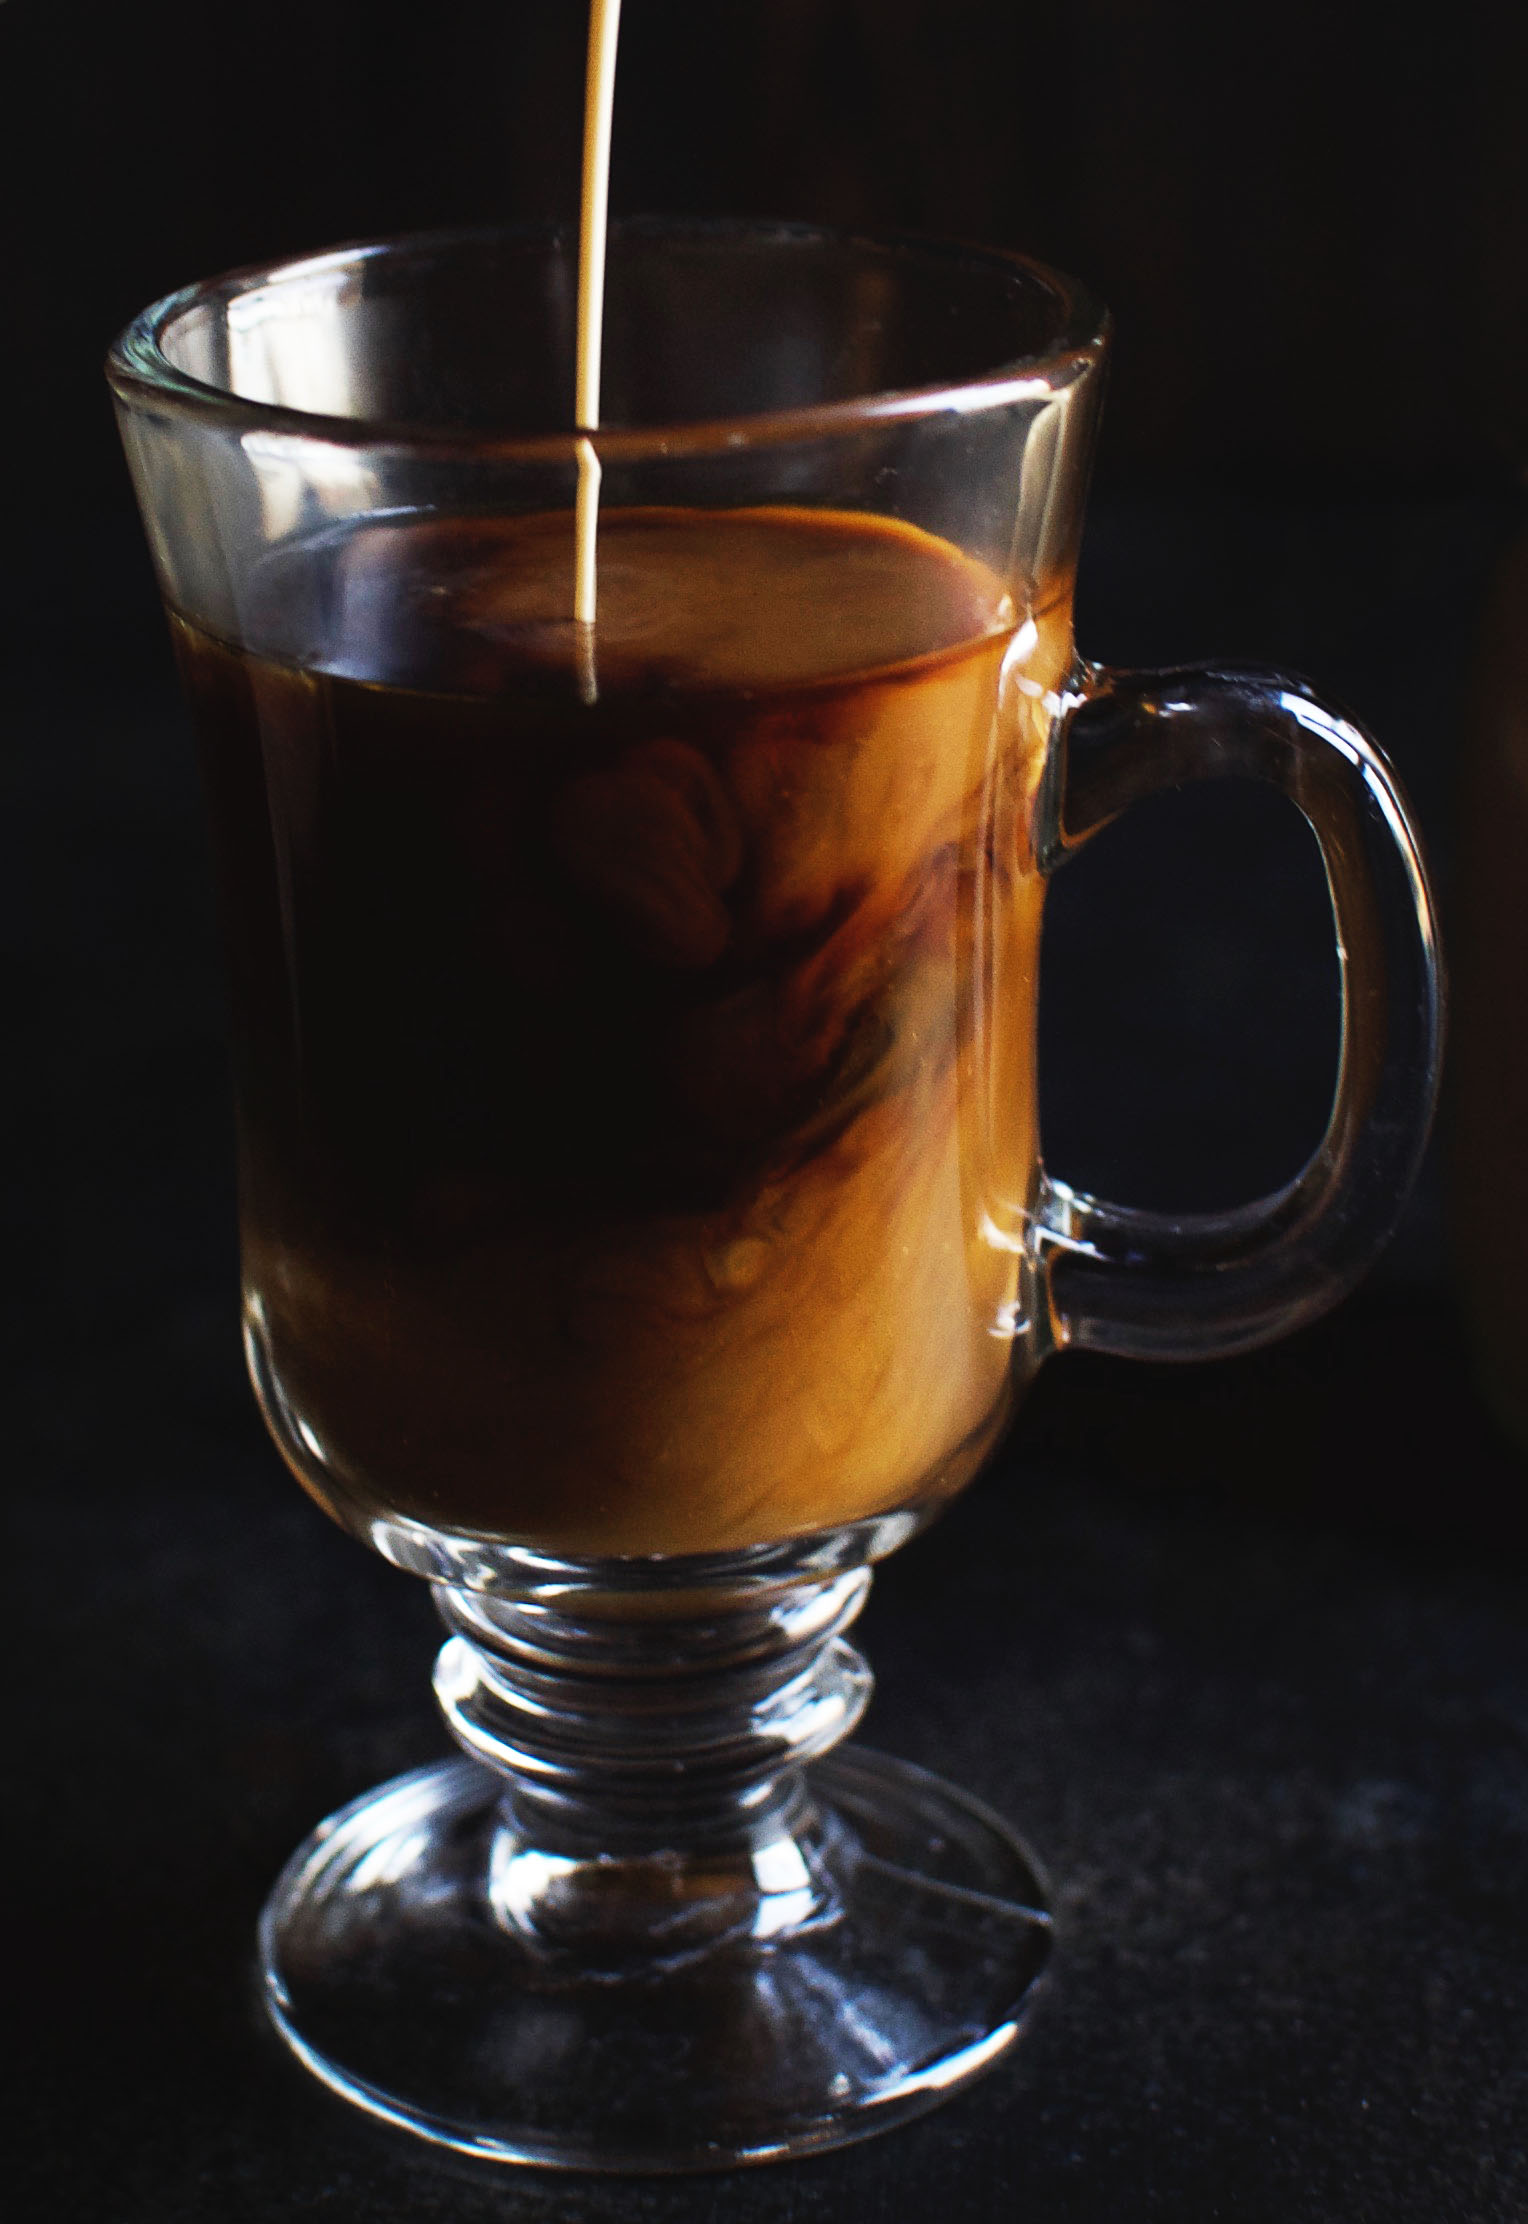 Pouring Low-Carb Irish cream into some coffee.